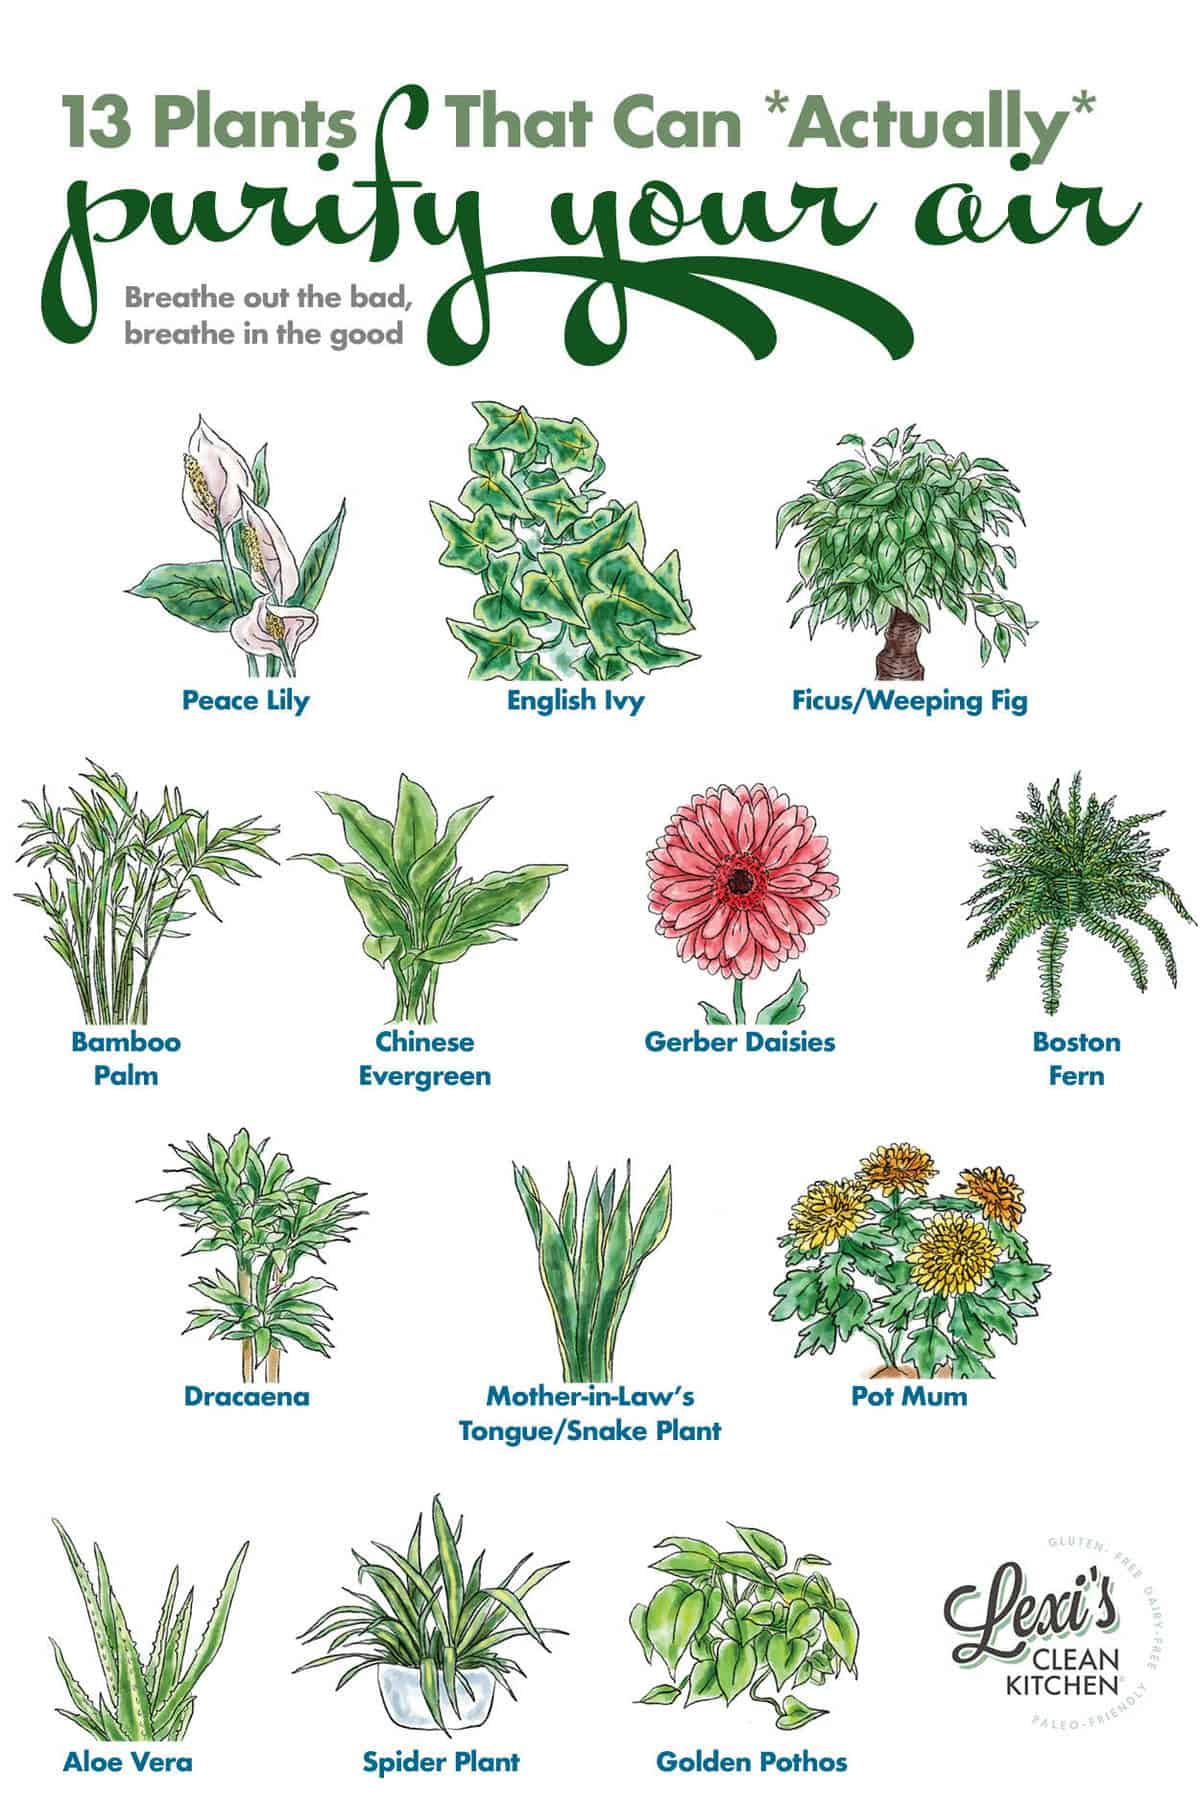 13 Plants That Can Actually Purify Your Air